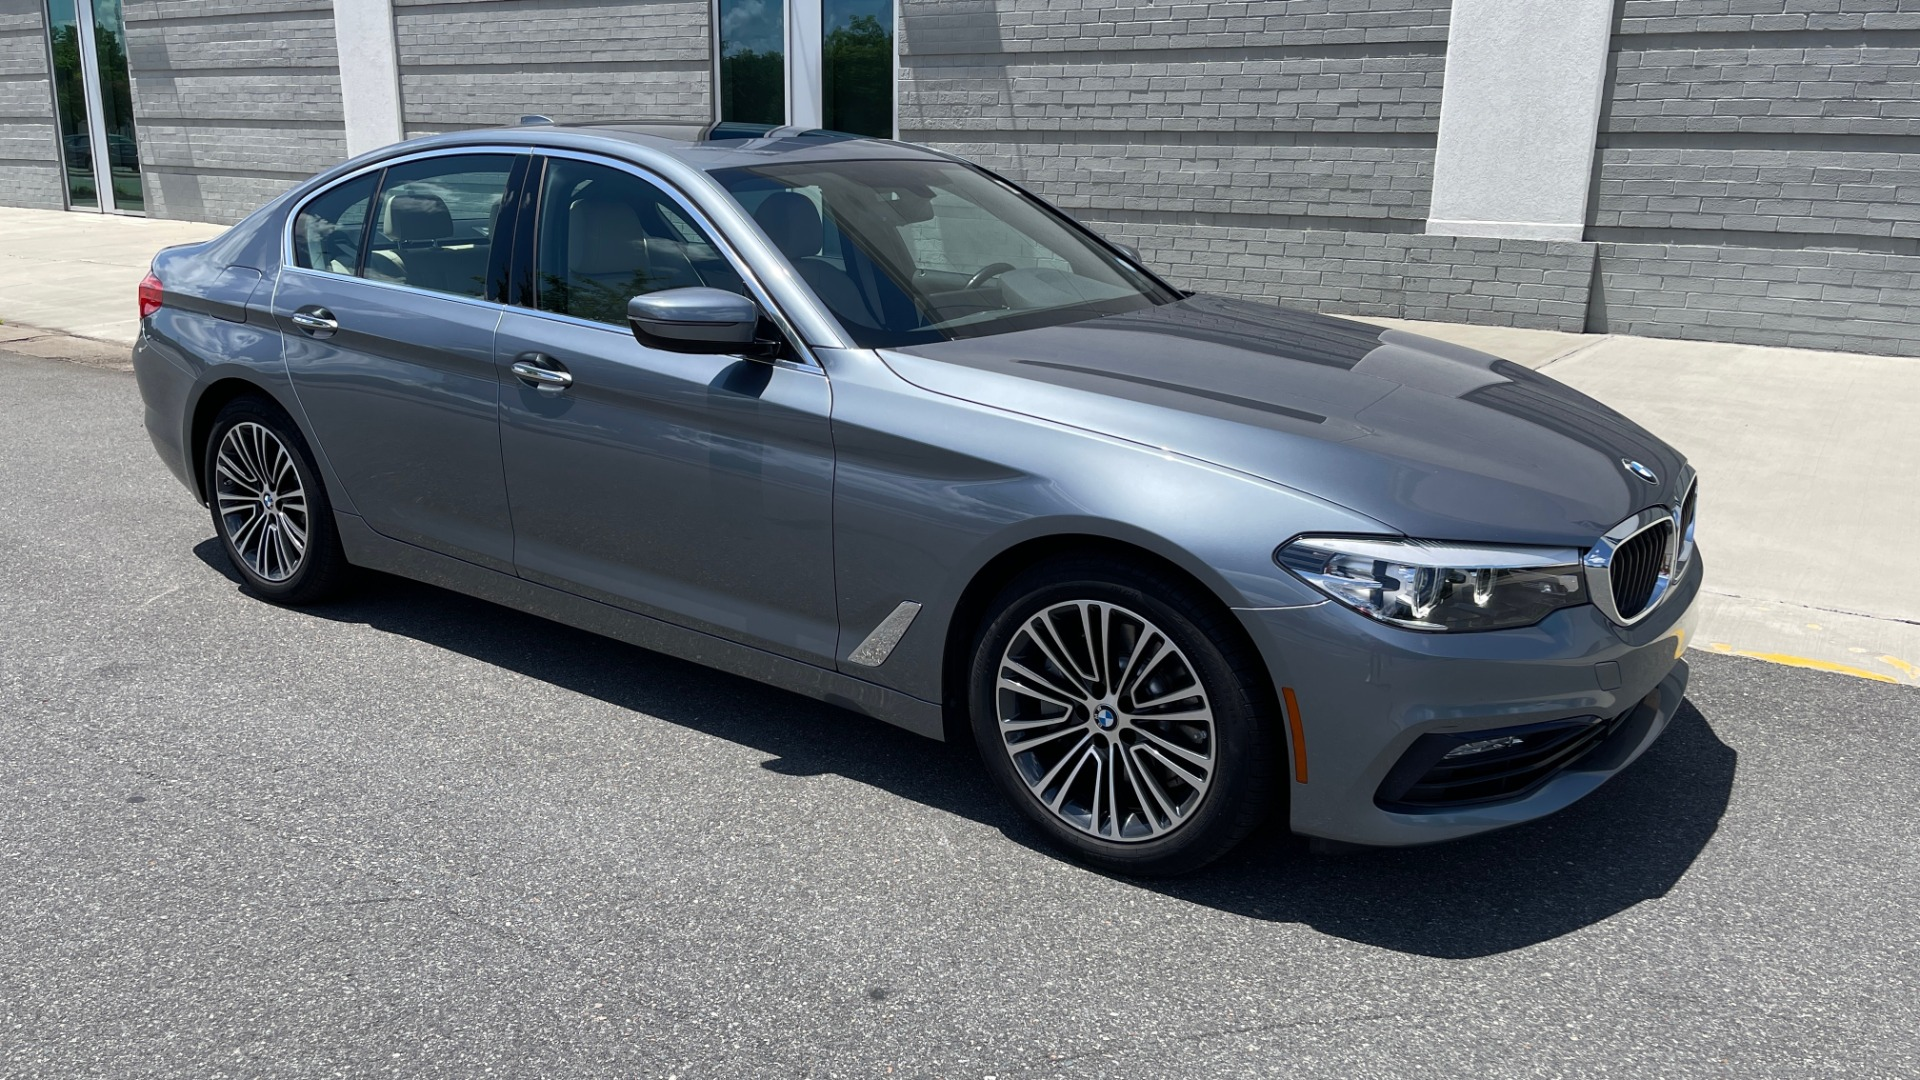 Used 2017 BMW 5 SERIES 530I PREMIUM / WIFI / NAV / SUNROOF / AUTO CLIMATE CONTROL for sale $31,795 at Formula Imports in Charlotte NC 28227 6